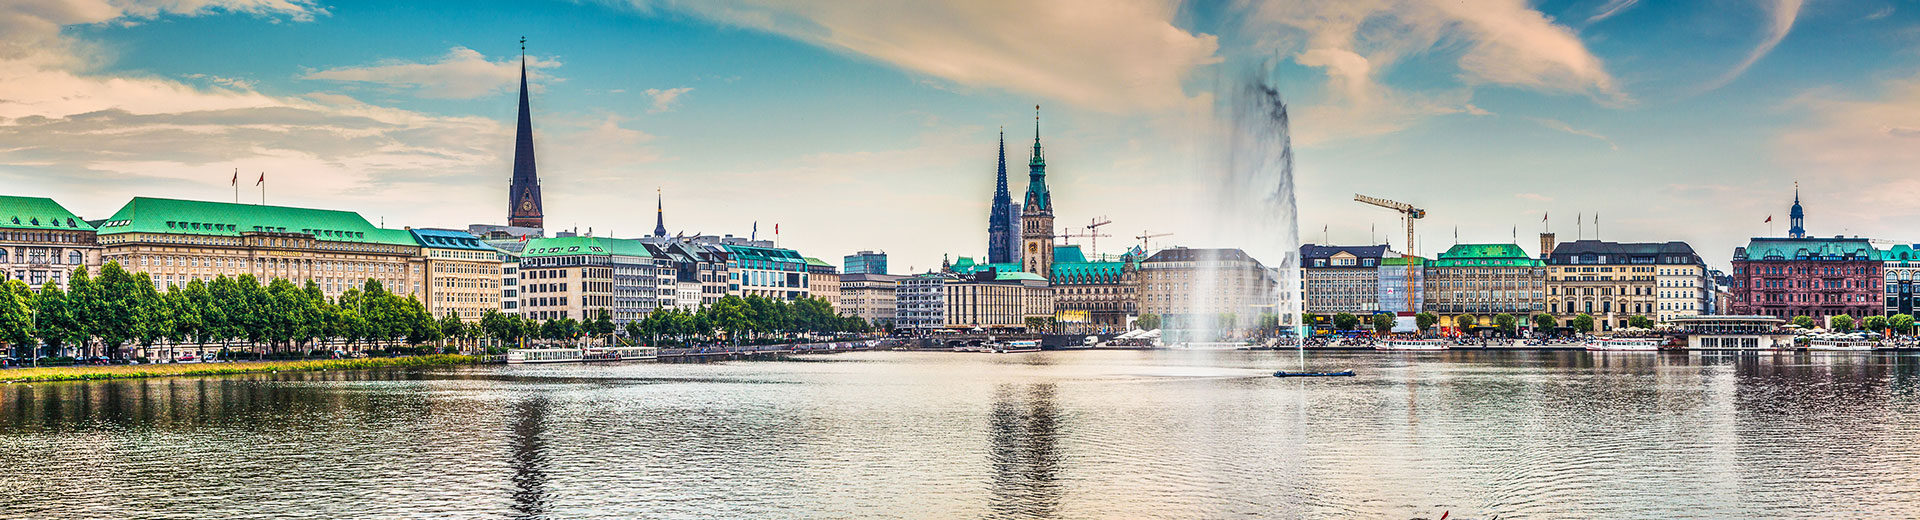 Gruppenreise Hamburg - Package Gruppen Select Flug